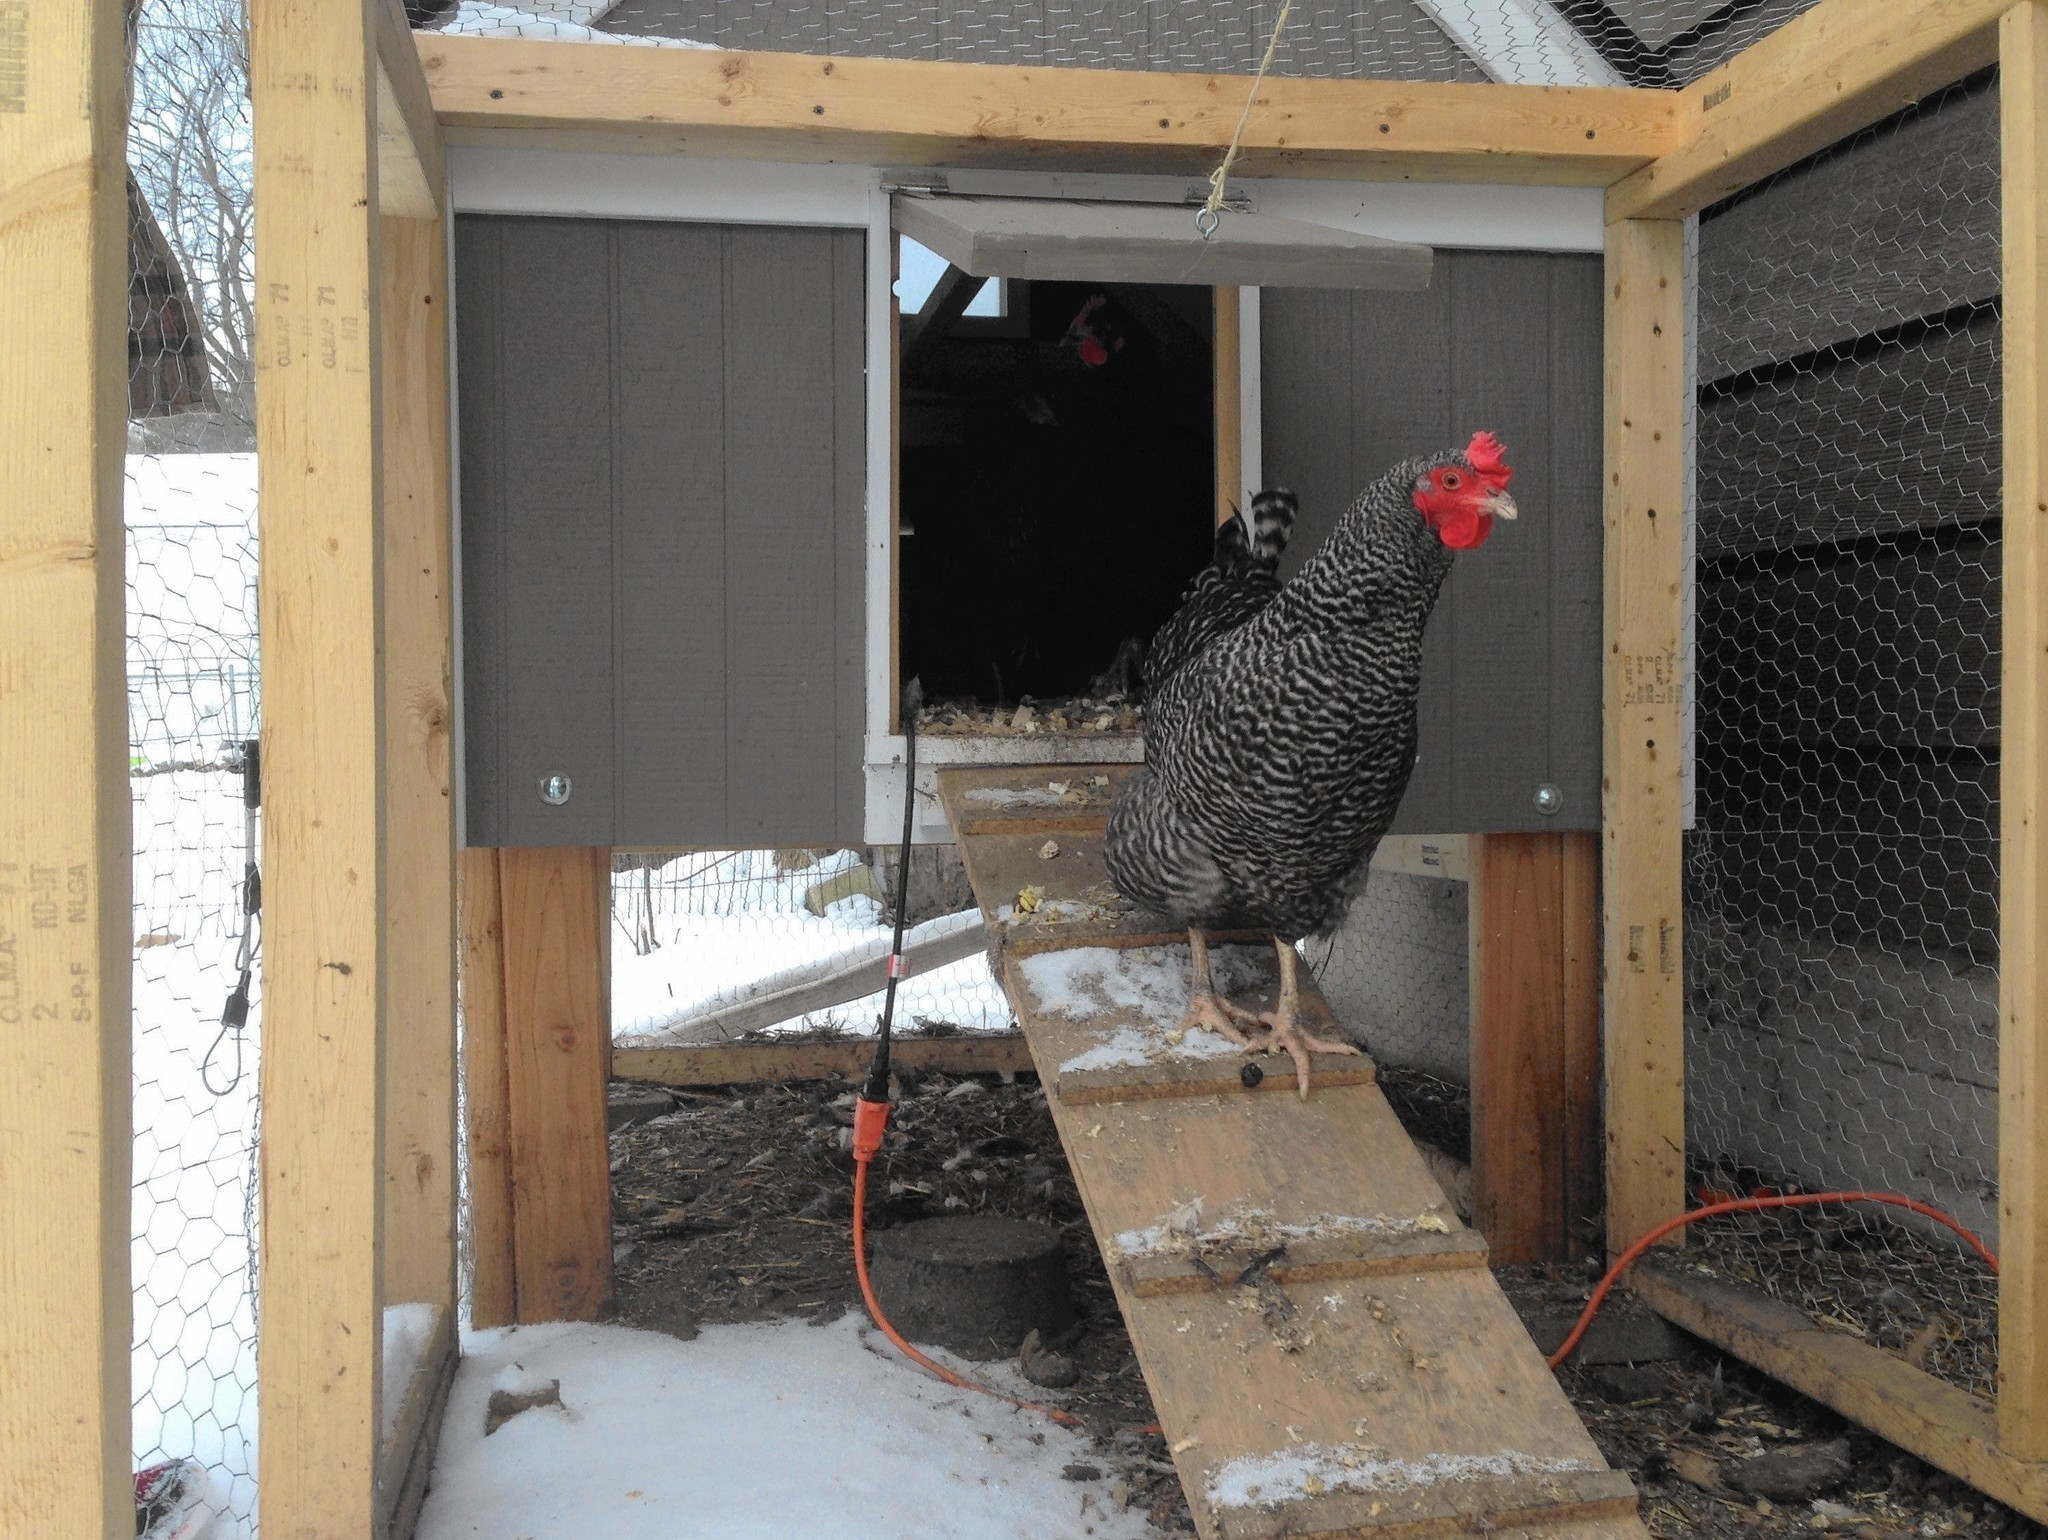 oswego may join flock allowing backyard chickens aurora beacon news